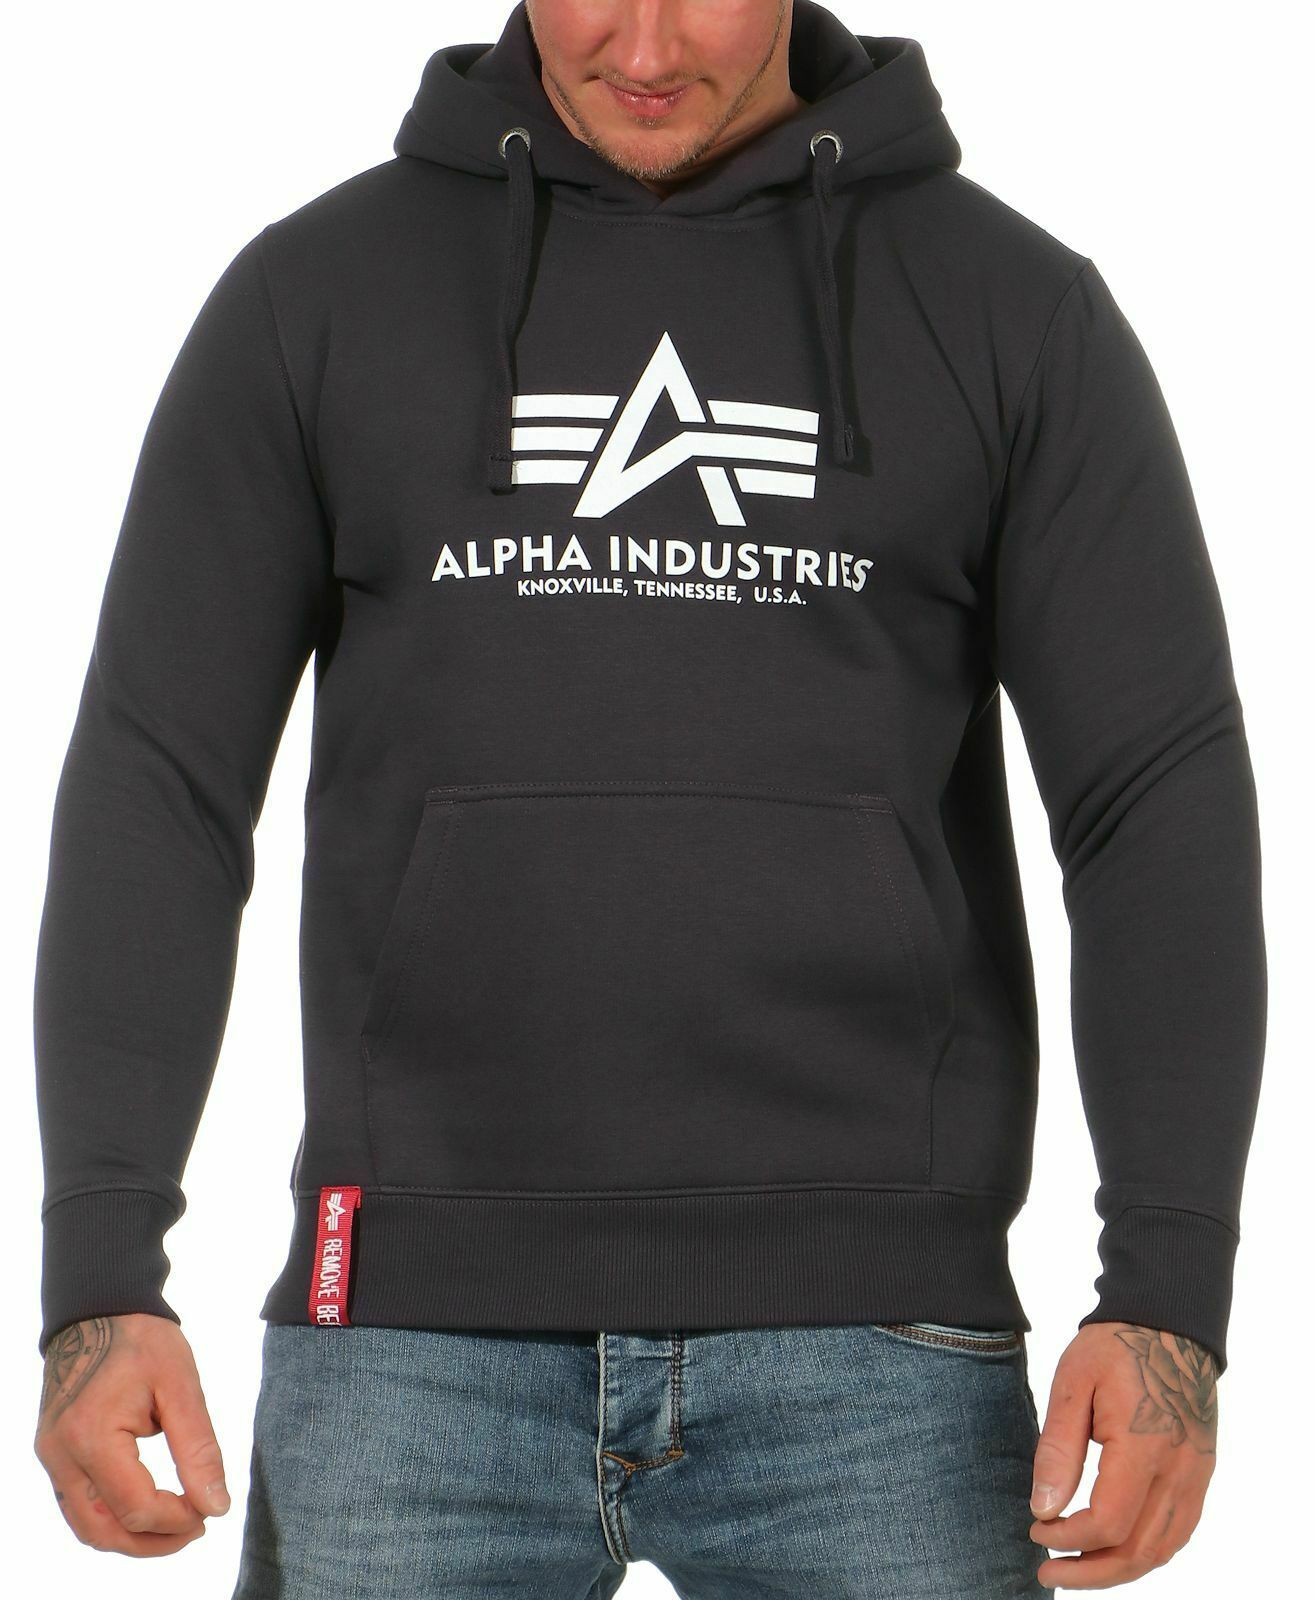 178312-466 Alpha Industries